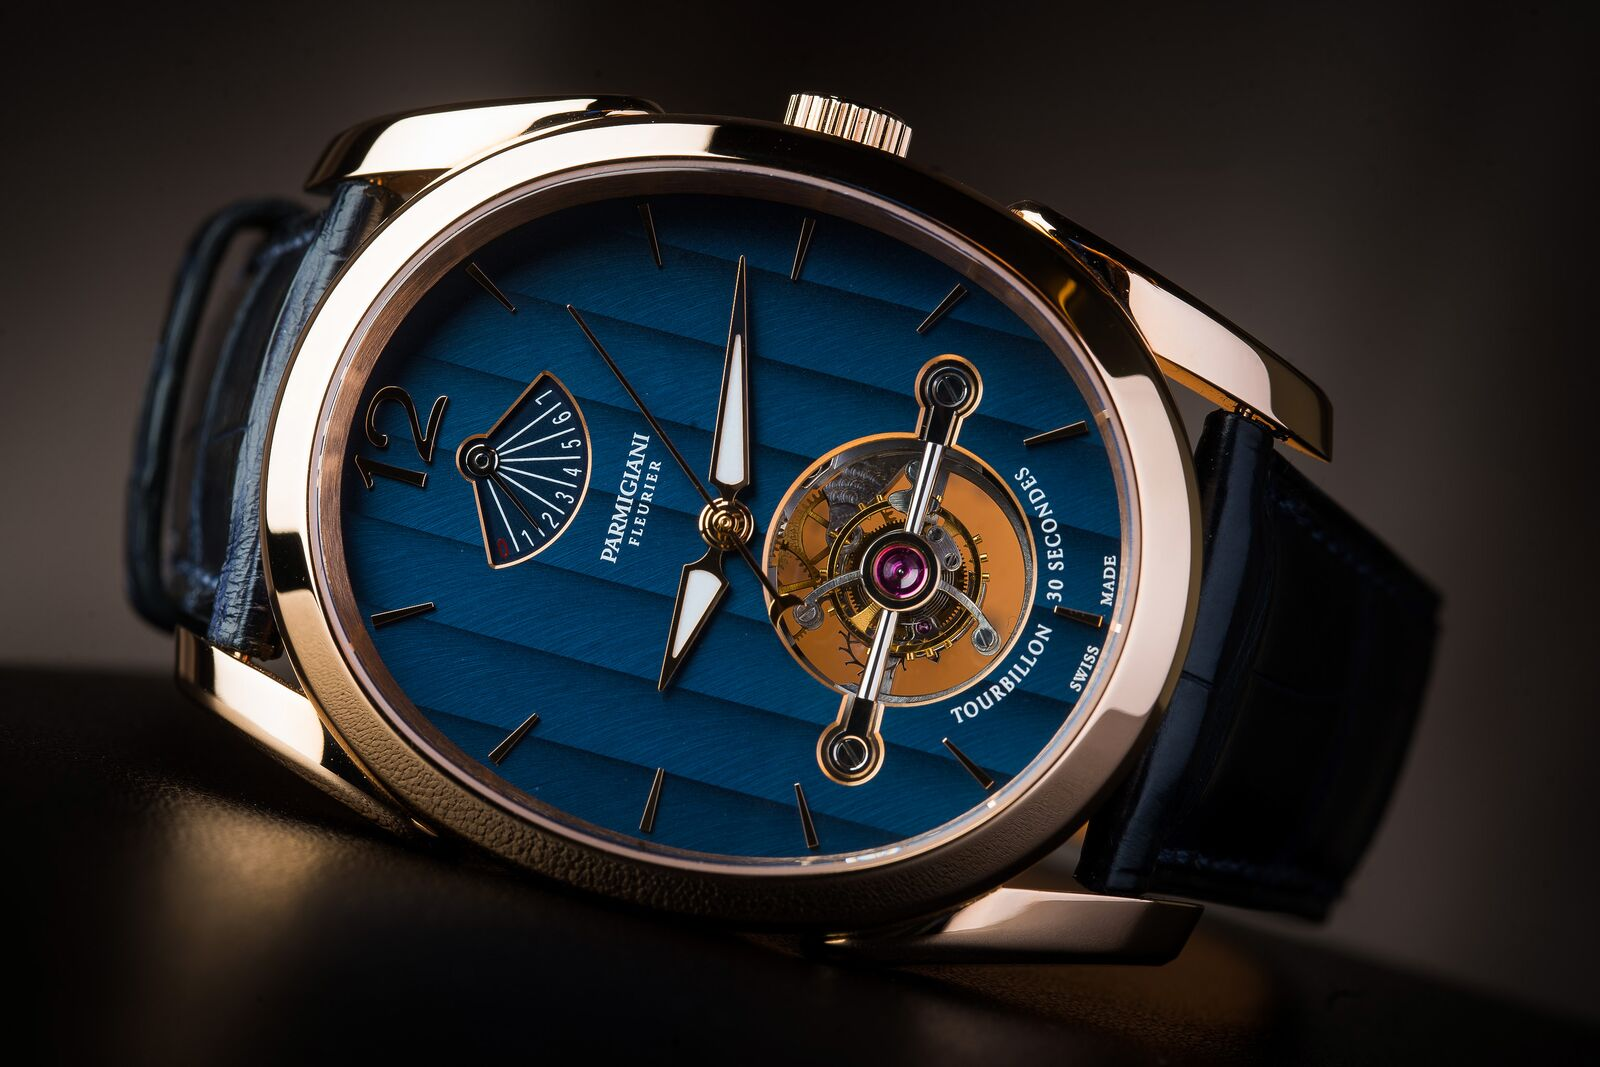 Tourbillons have become a collectors favorite and resulted in a rich array of unique watches that feature this complication such as this Parmigiani Ovale Tourbillon for example